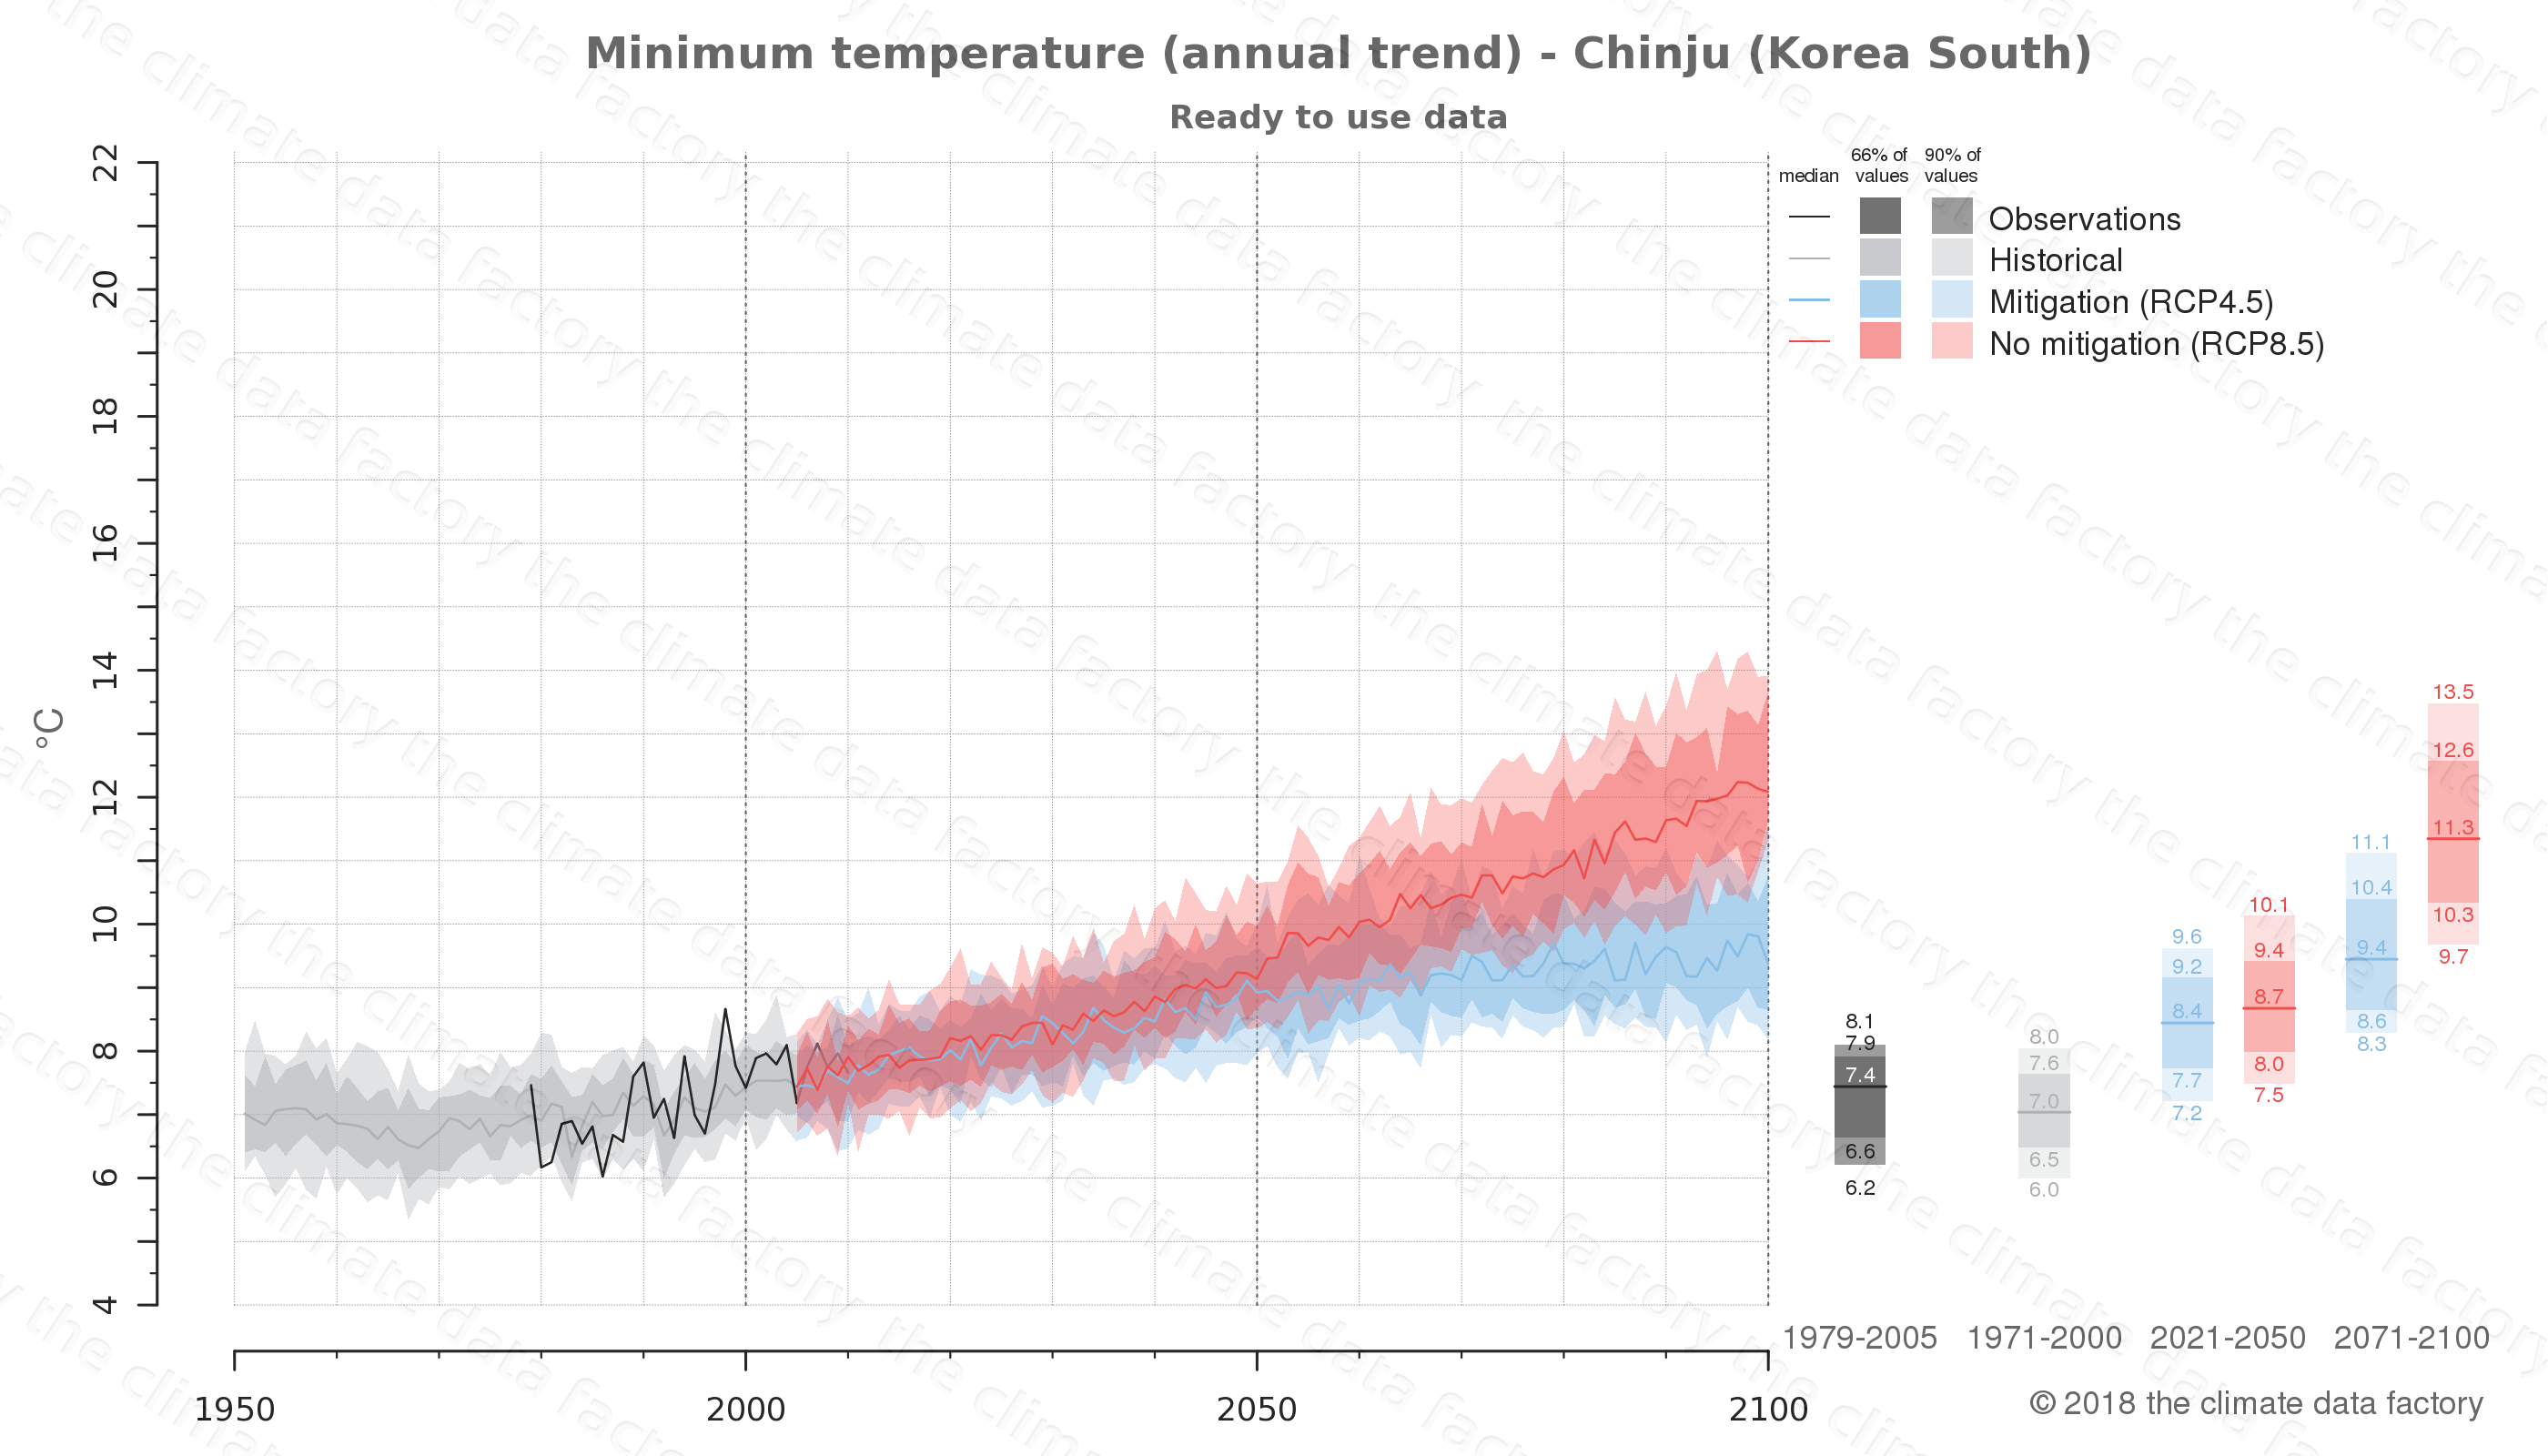 climate change data policy adaptation climate graph city data minimum-temperature chinju south korea